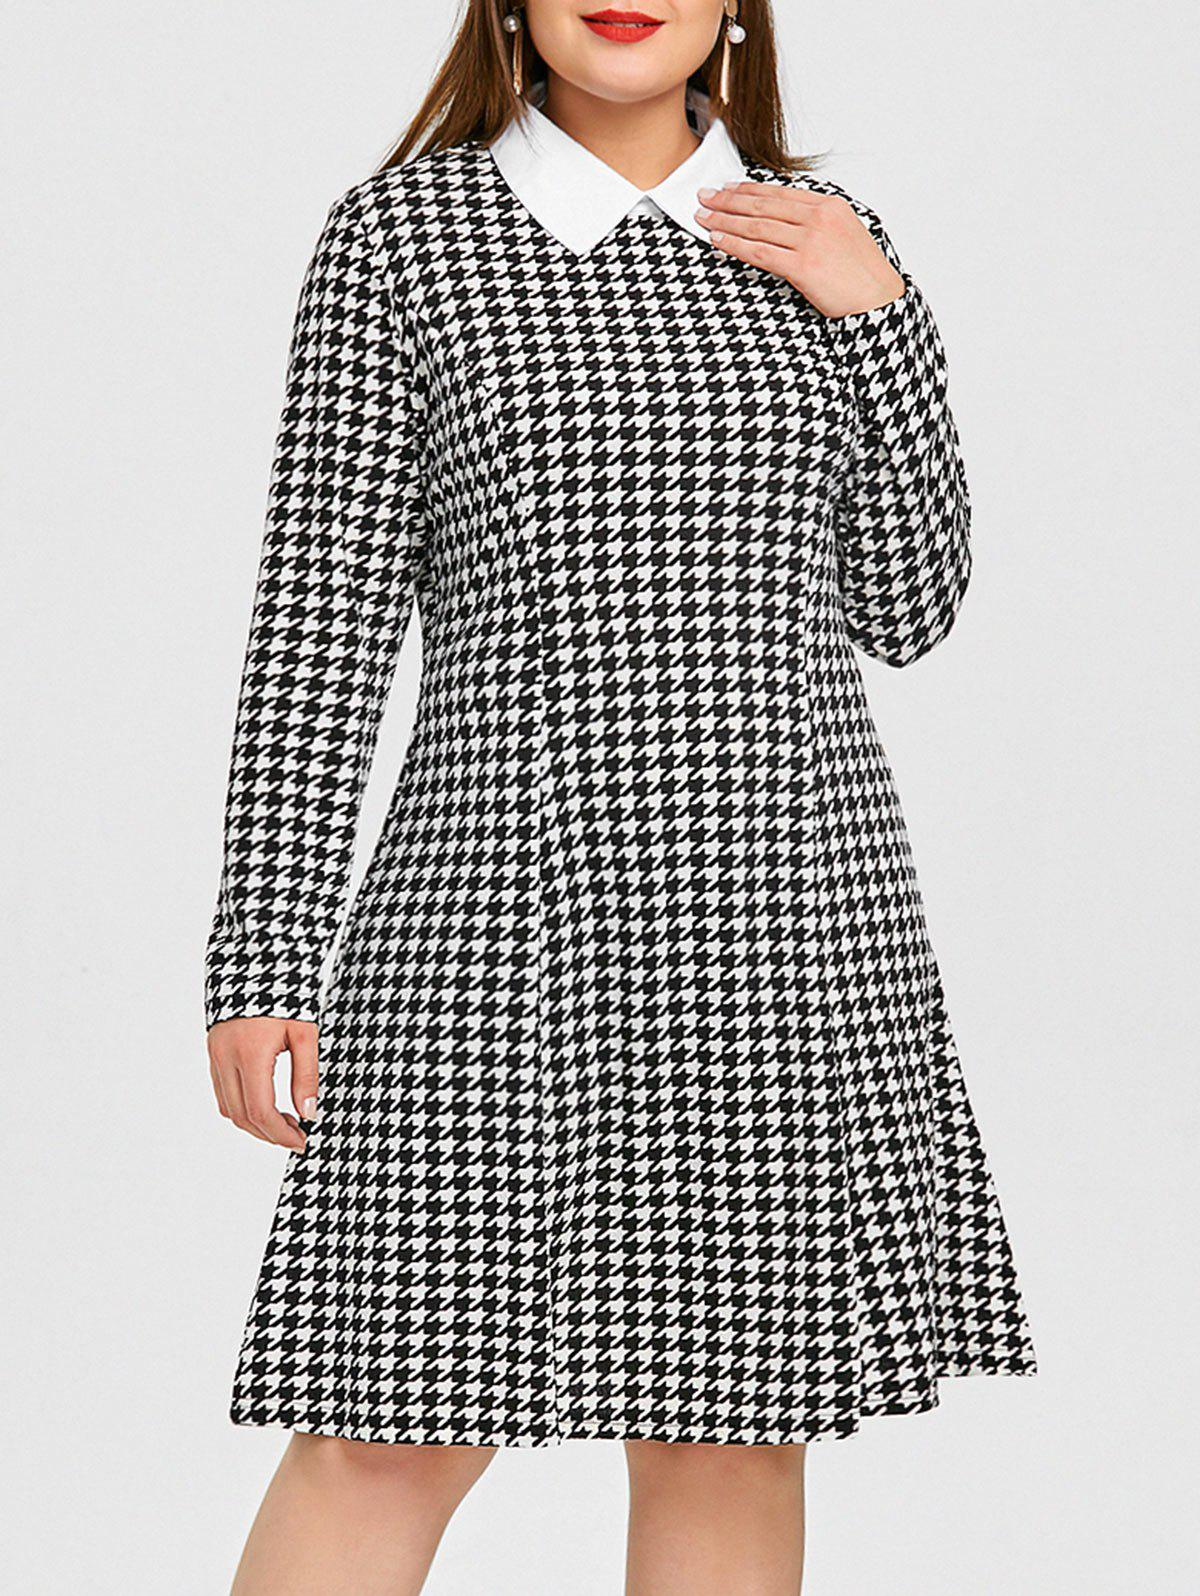 2018 Plus Size Shirt Collar Houndstooth Dress Black Xl In Casual